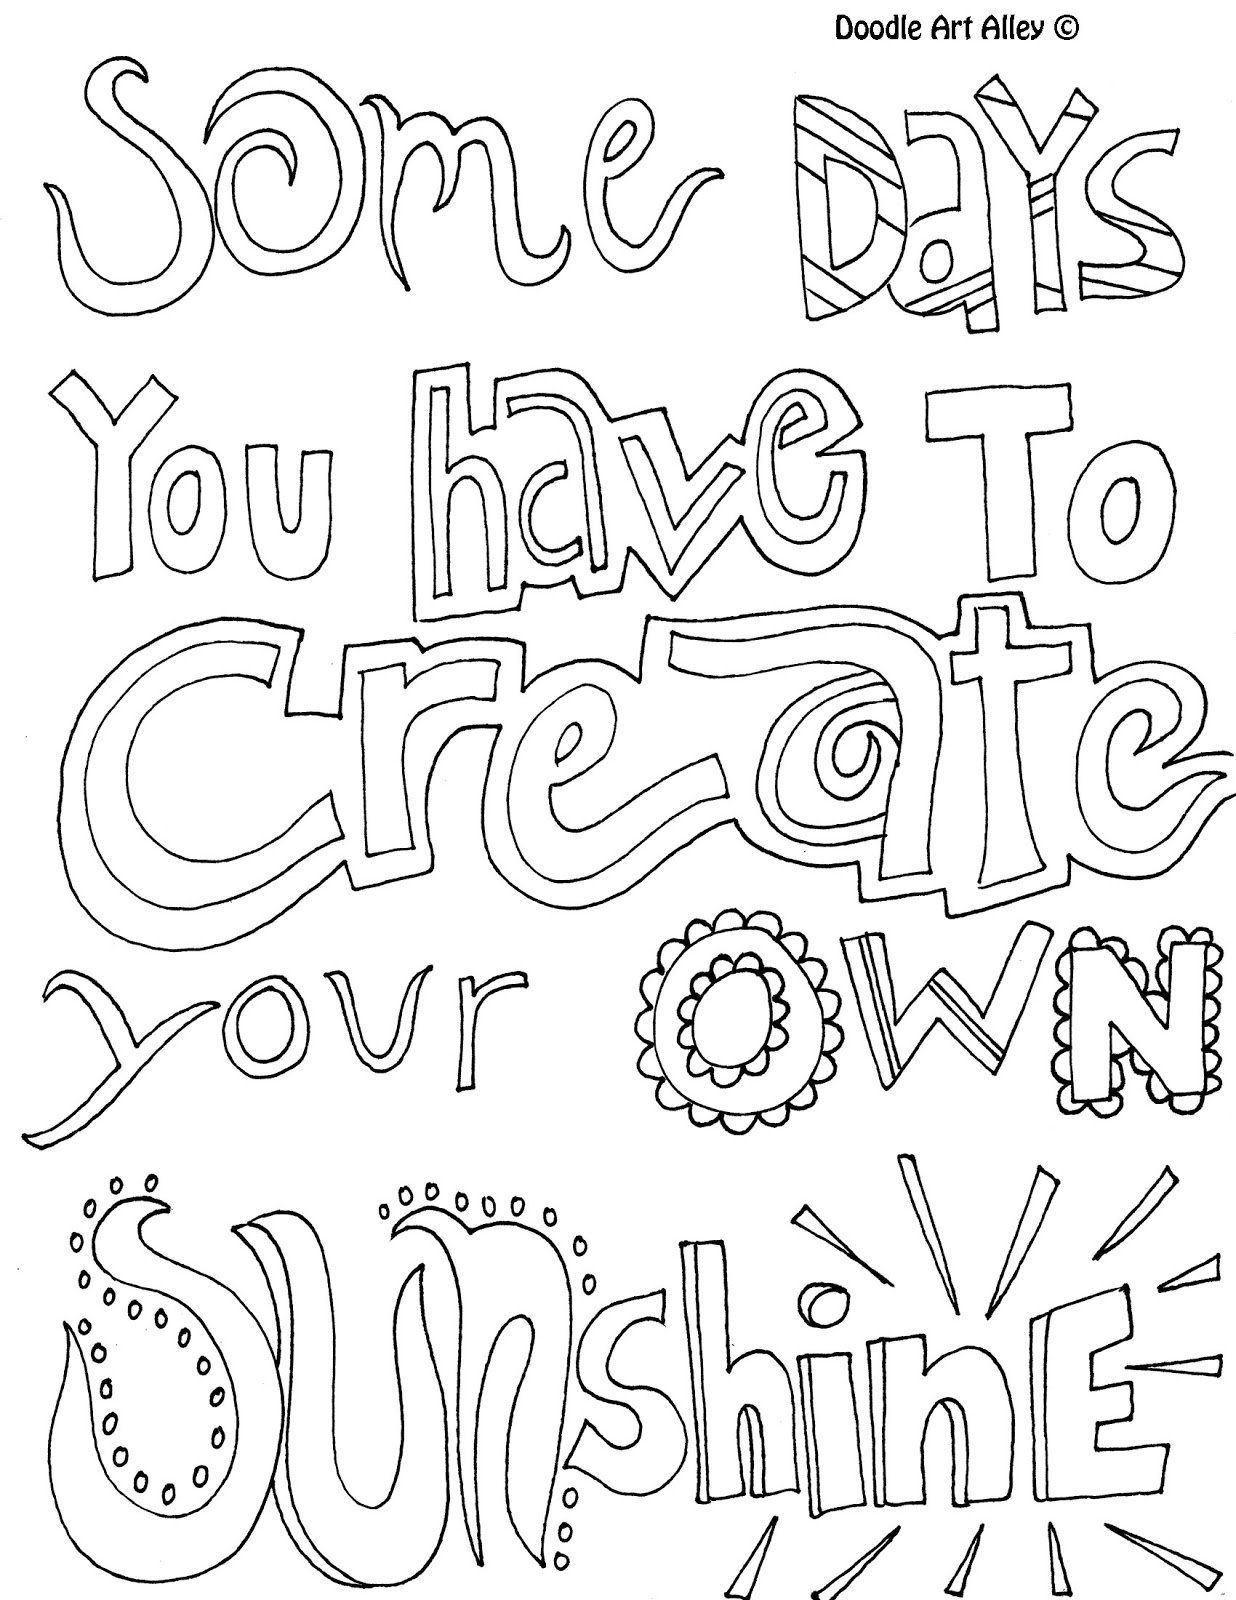 Color quotes adult coloring pages quote coloring pages printable coloring pages coloring